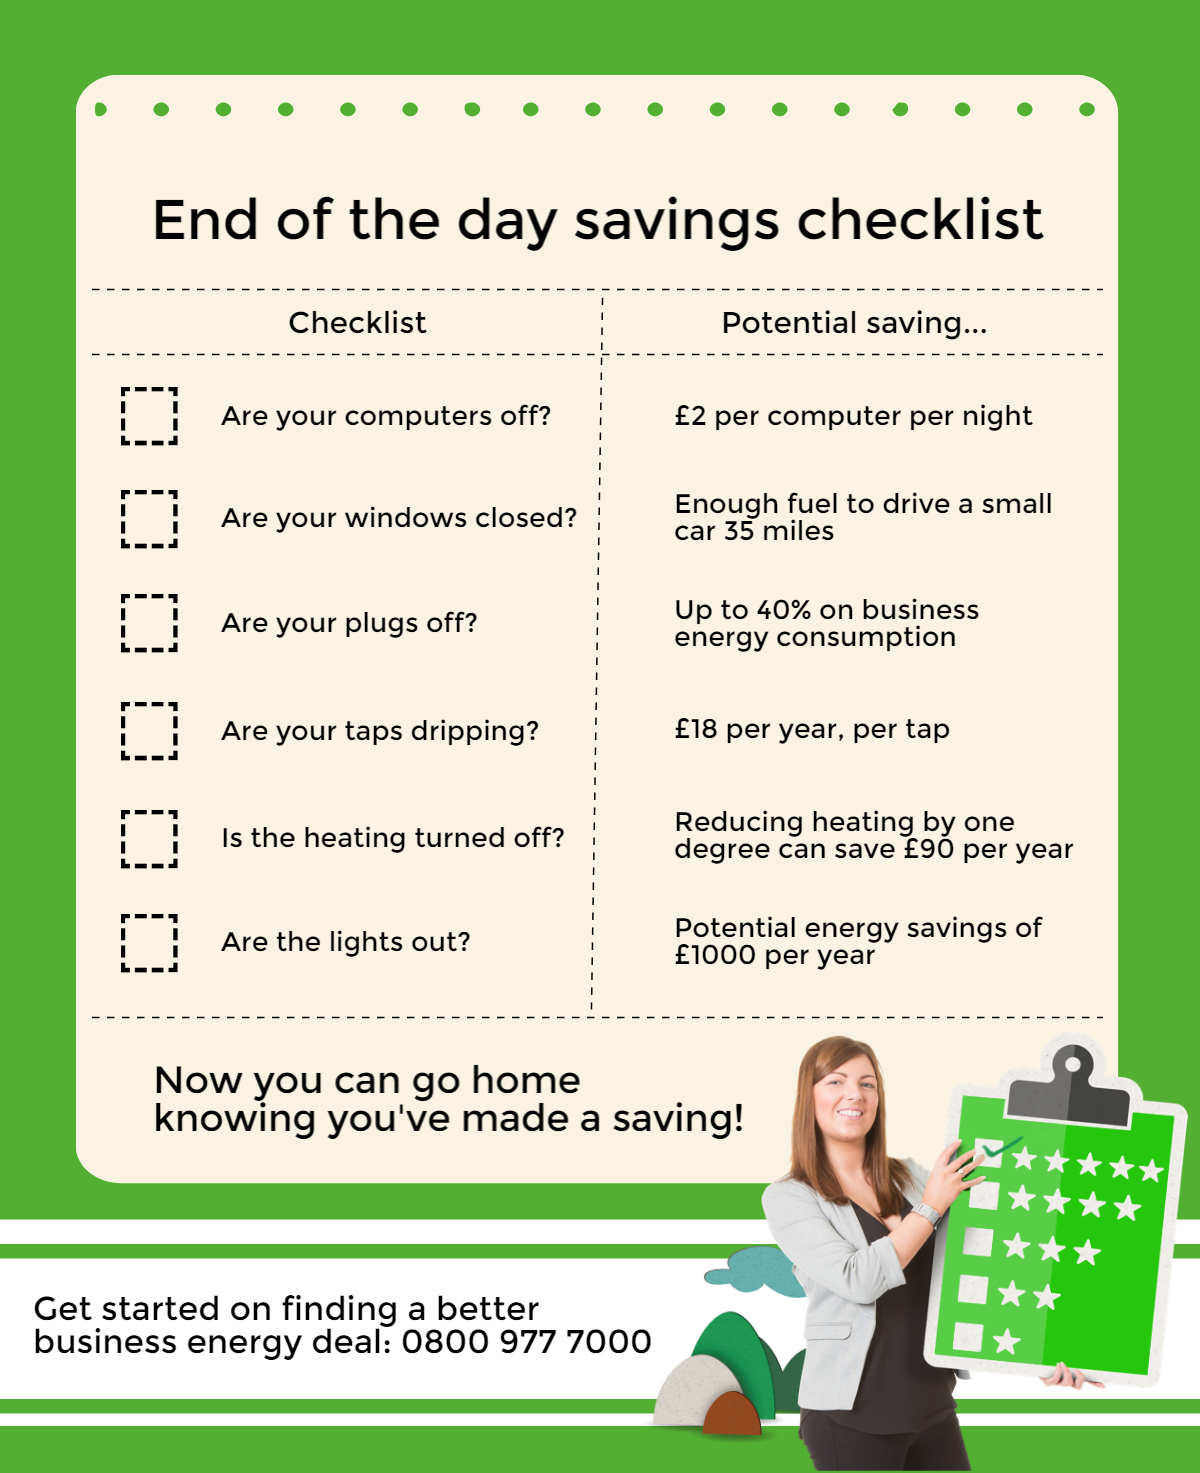 end of the day savings checklist